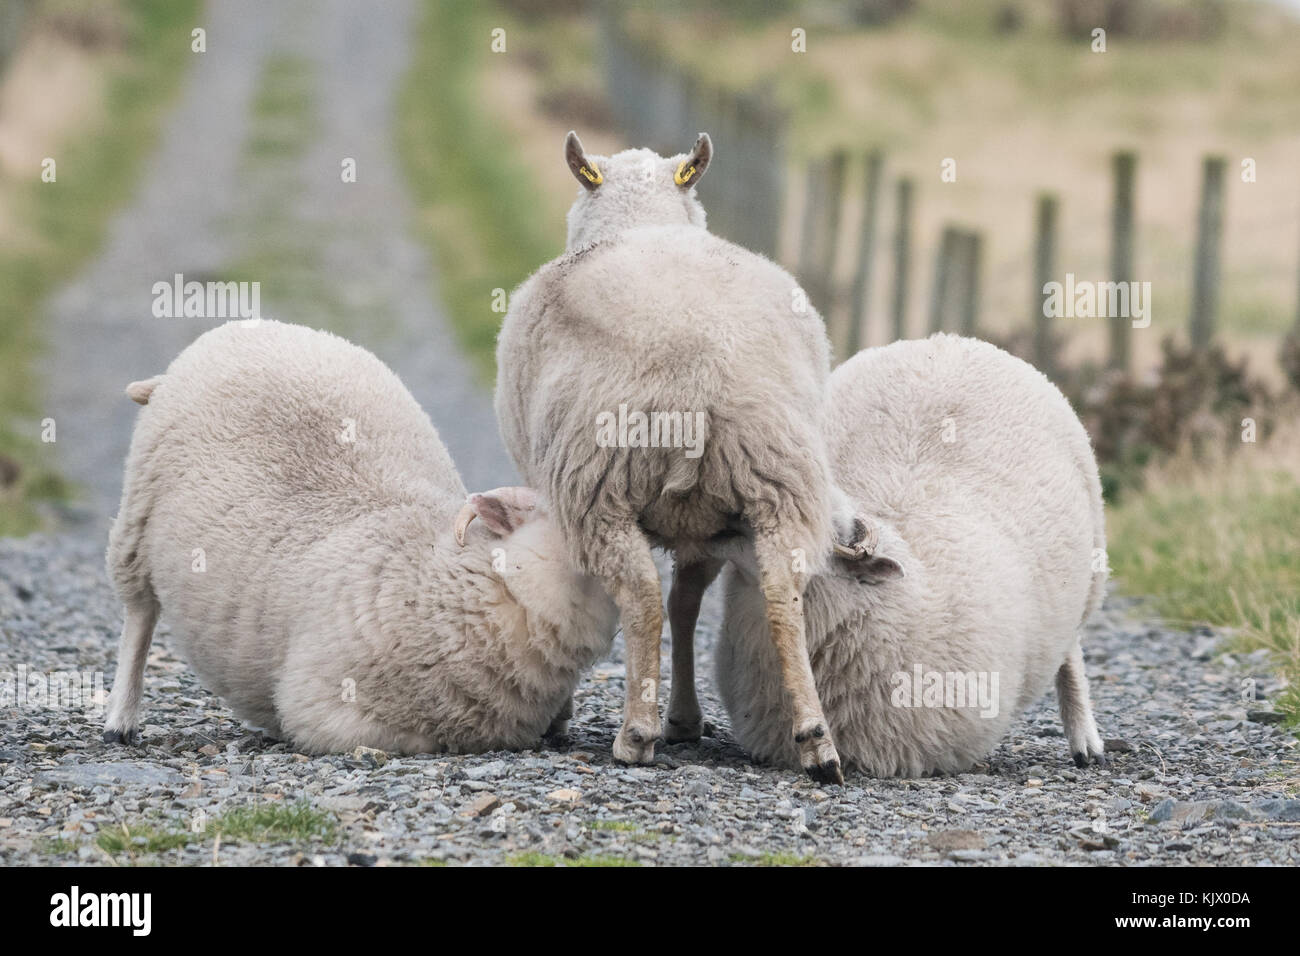 Sheep - large lambs suckling from ewe or dam in Scotland - Stock Image